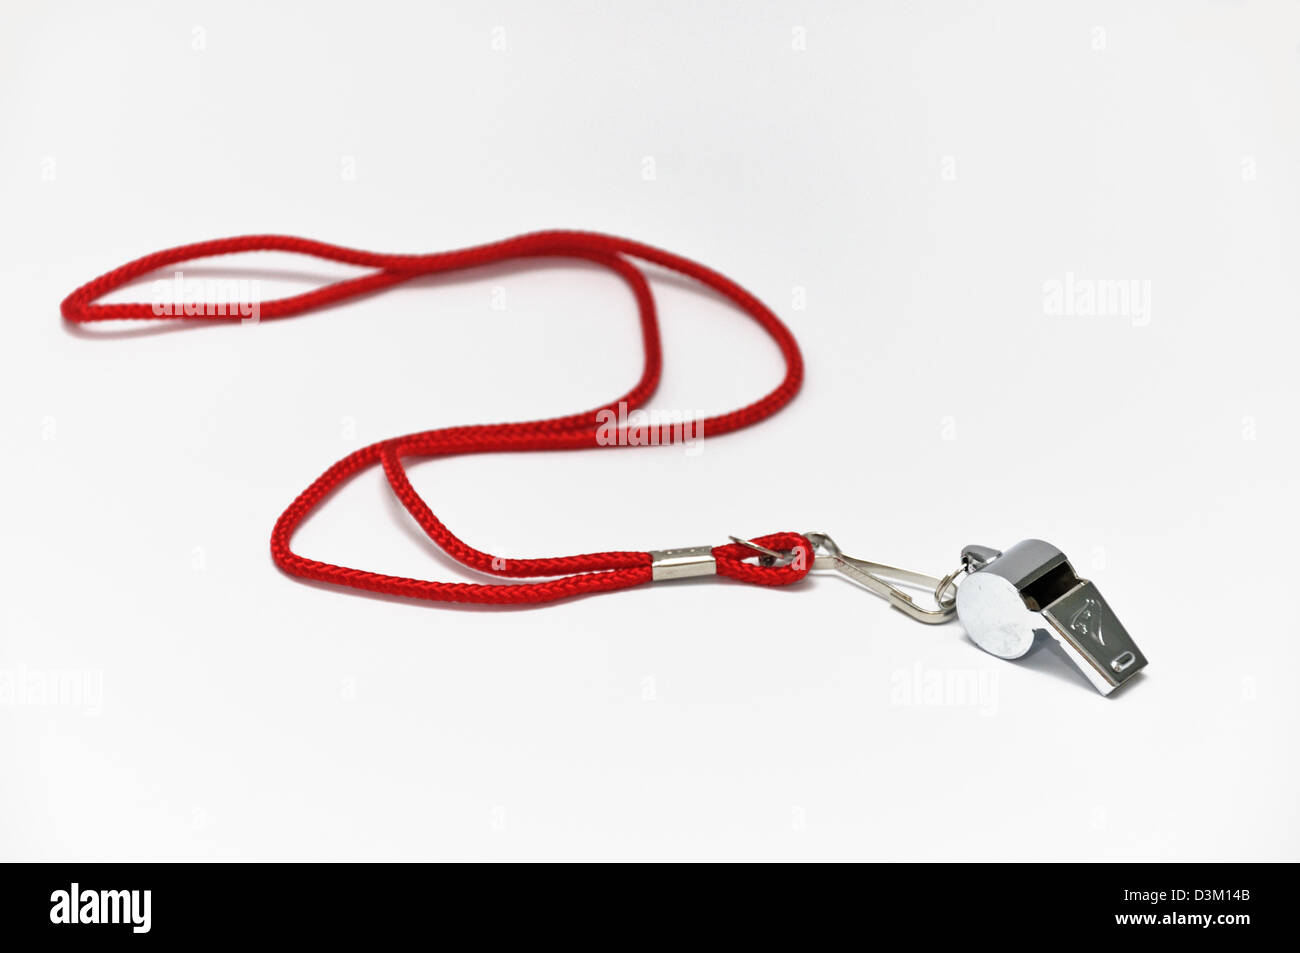 Silver whistle with red cord isolated on white - Stock Image